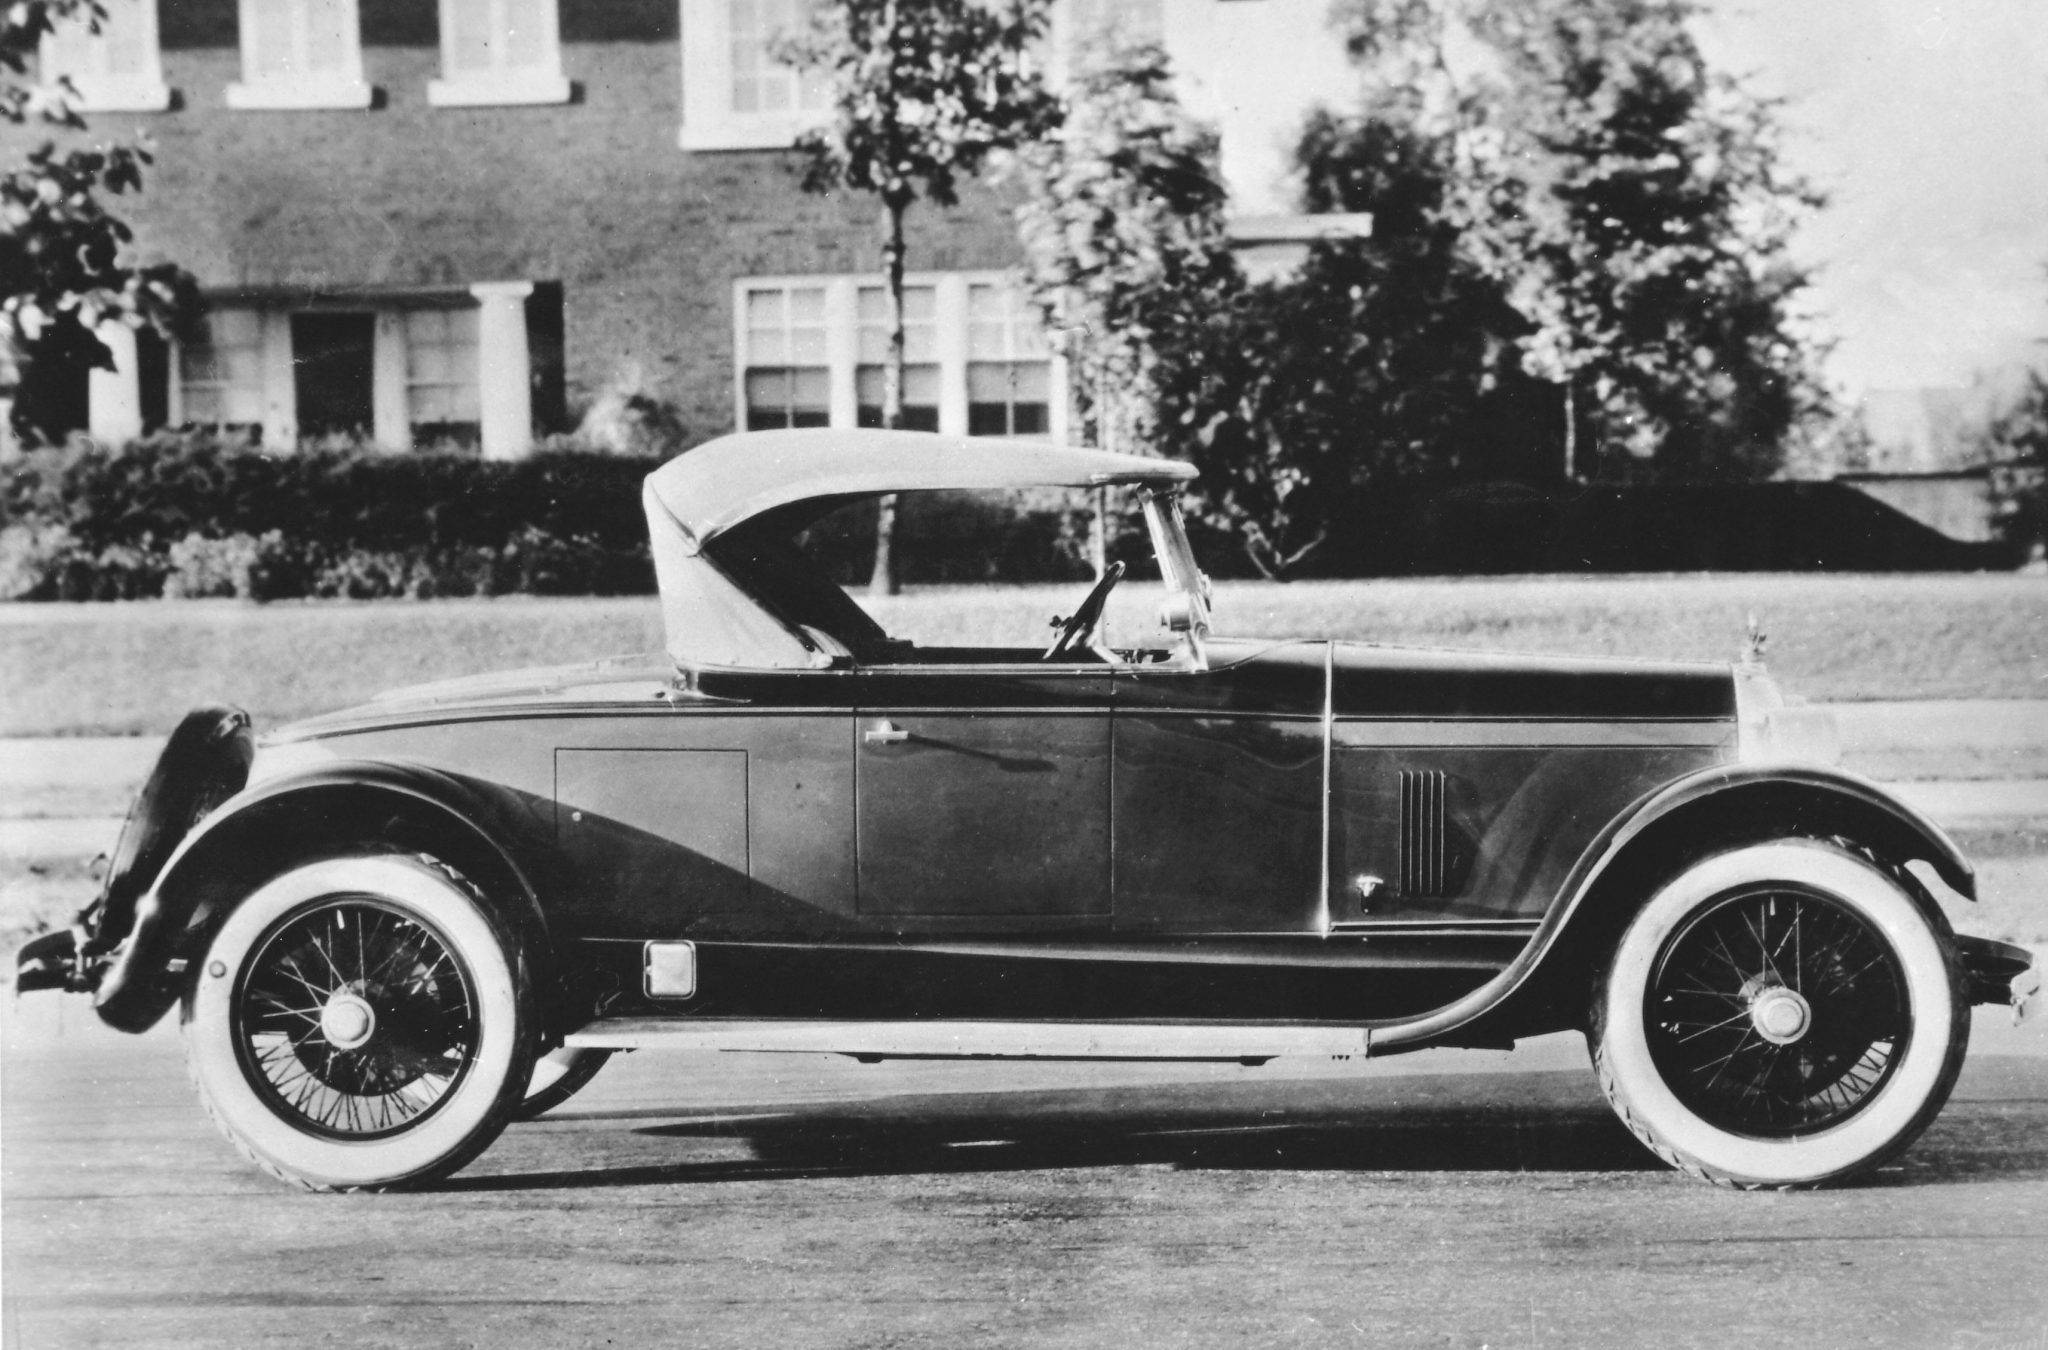 A roadster looked great no matter what was under the hood, but when it was a Duesenberg straight eight on that long stretch of 134-inches, it was just a little better than any other in 1922. The rear-mounted spare added to the rugged good looks of this car, which by 1923 was a standard cataloged body style.